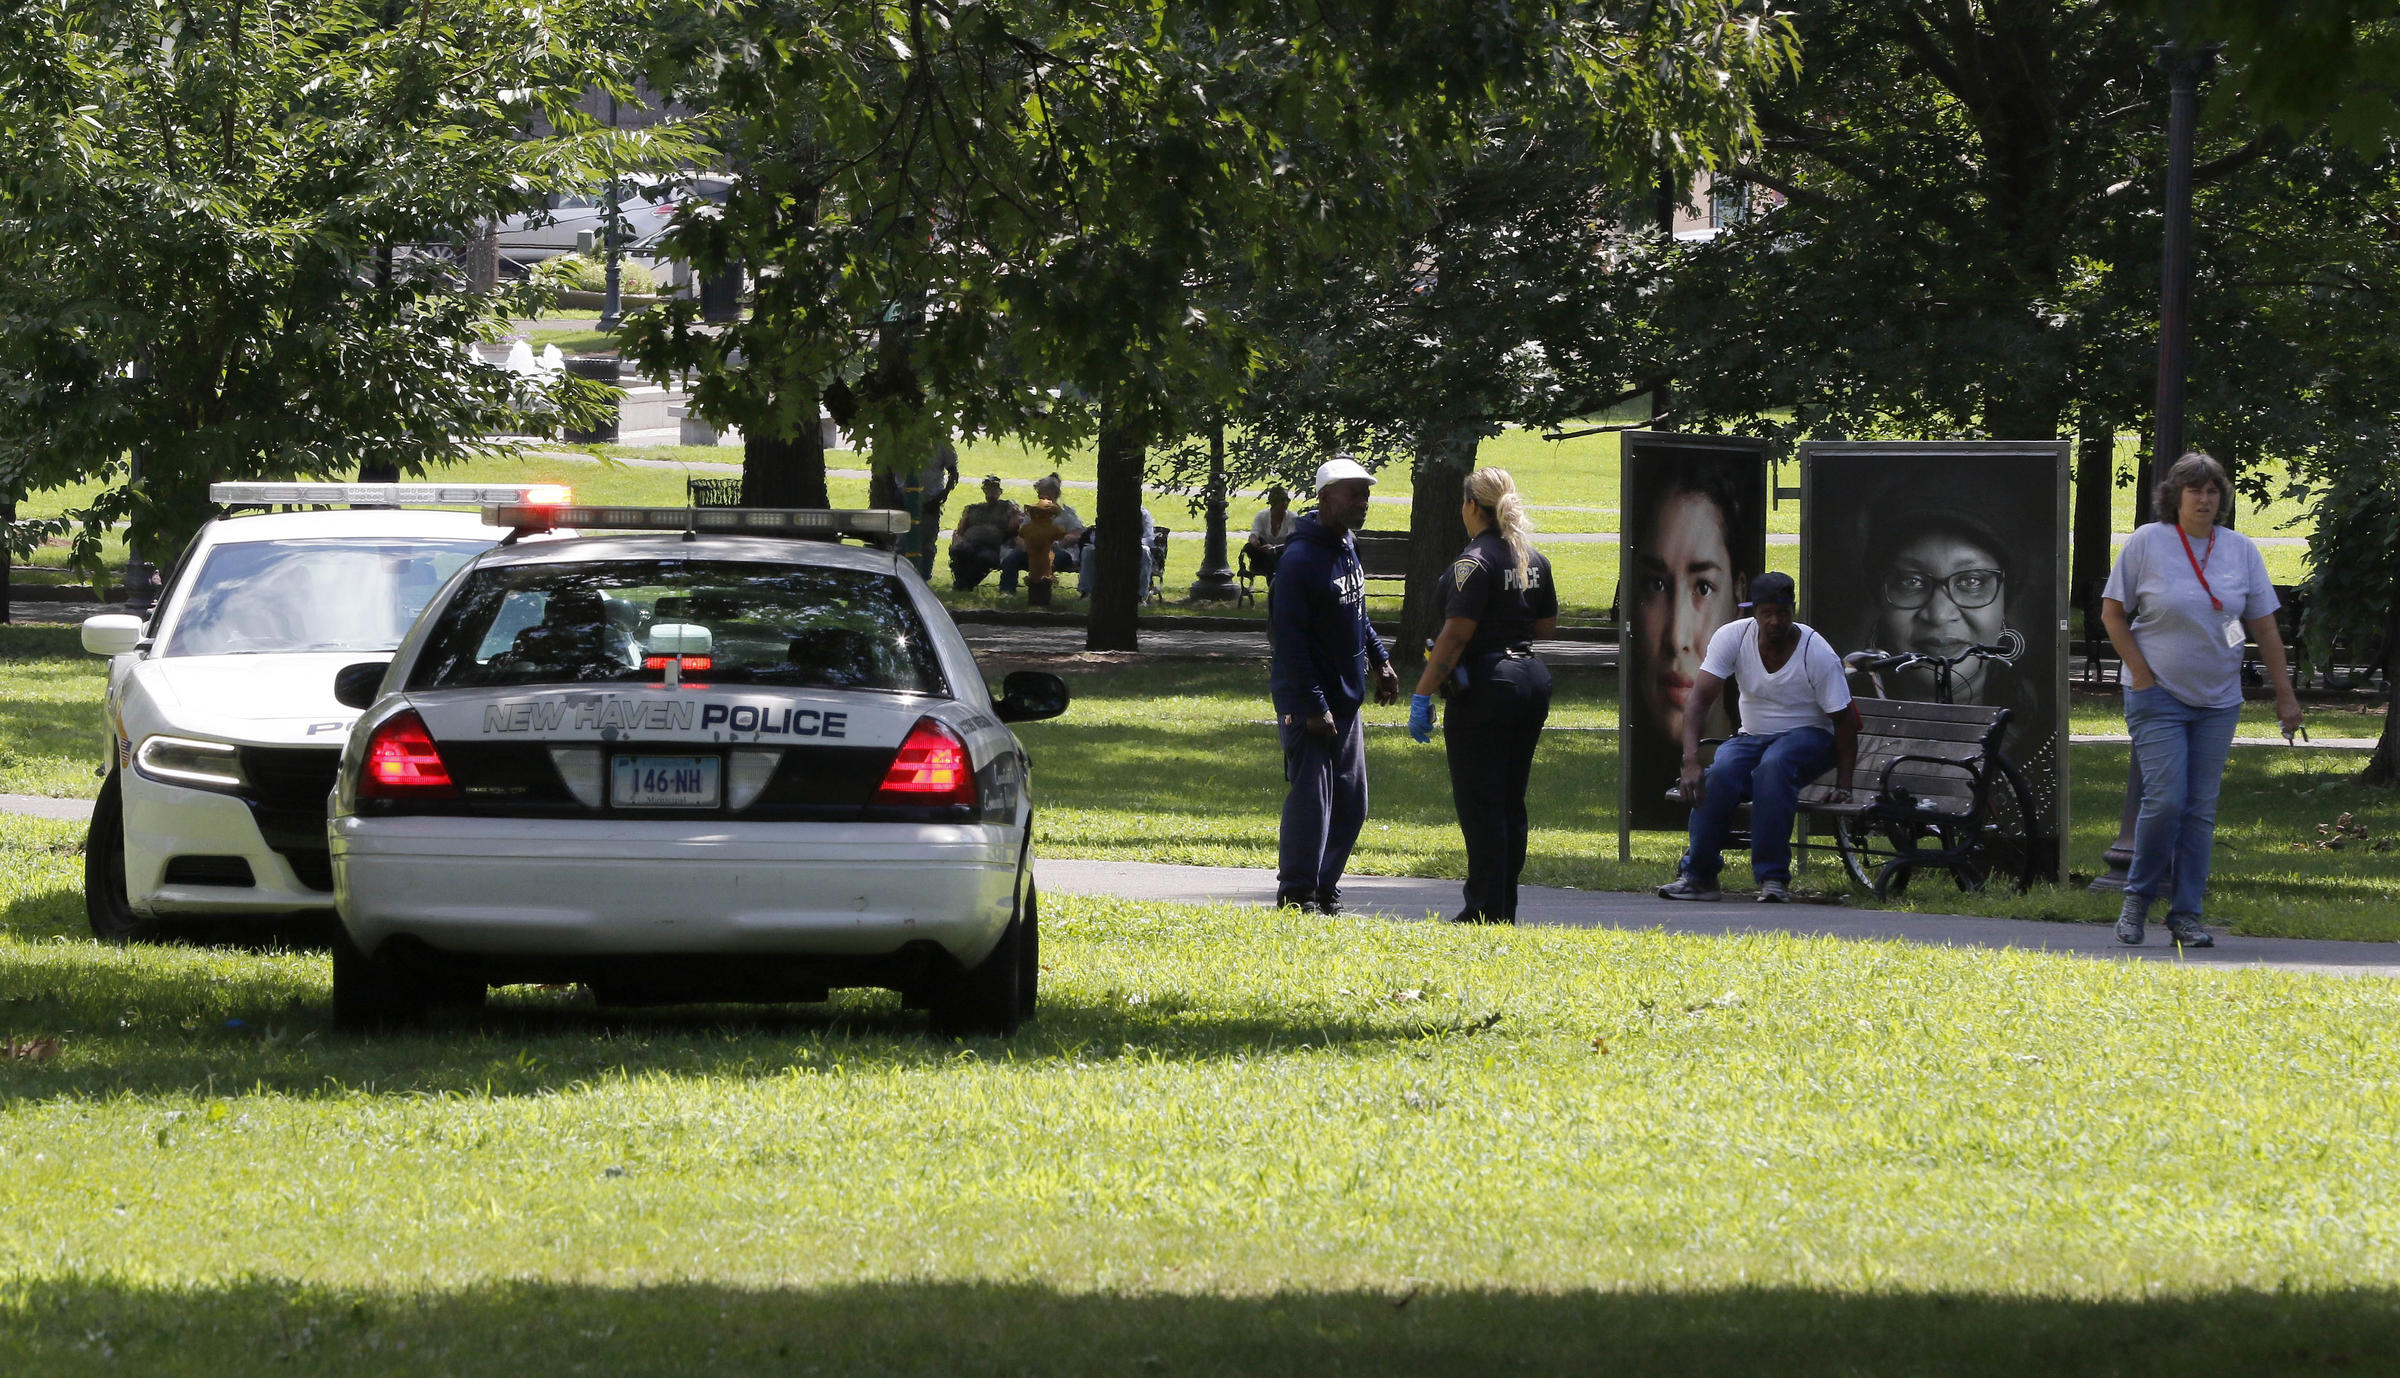 Multiple suspected synthetic cannabis overdoses at park by Yale University